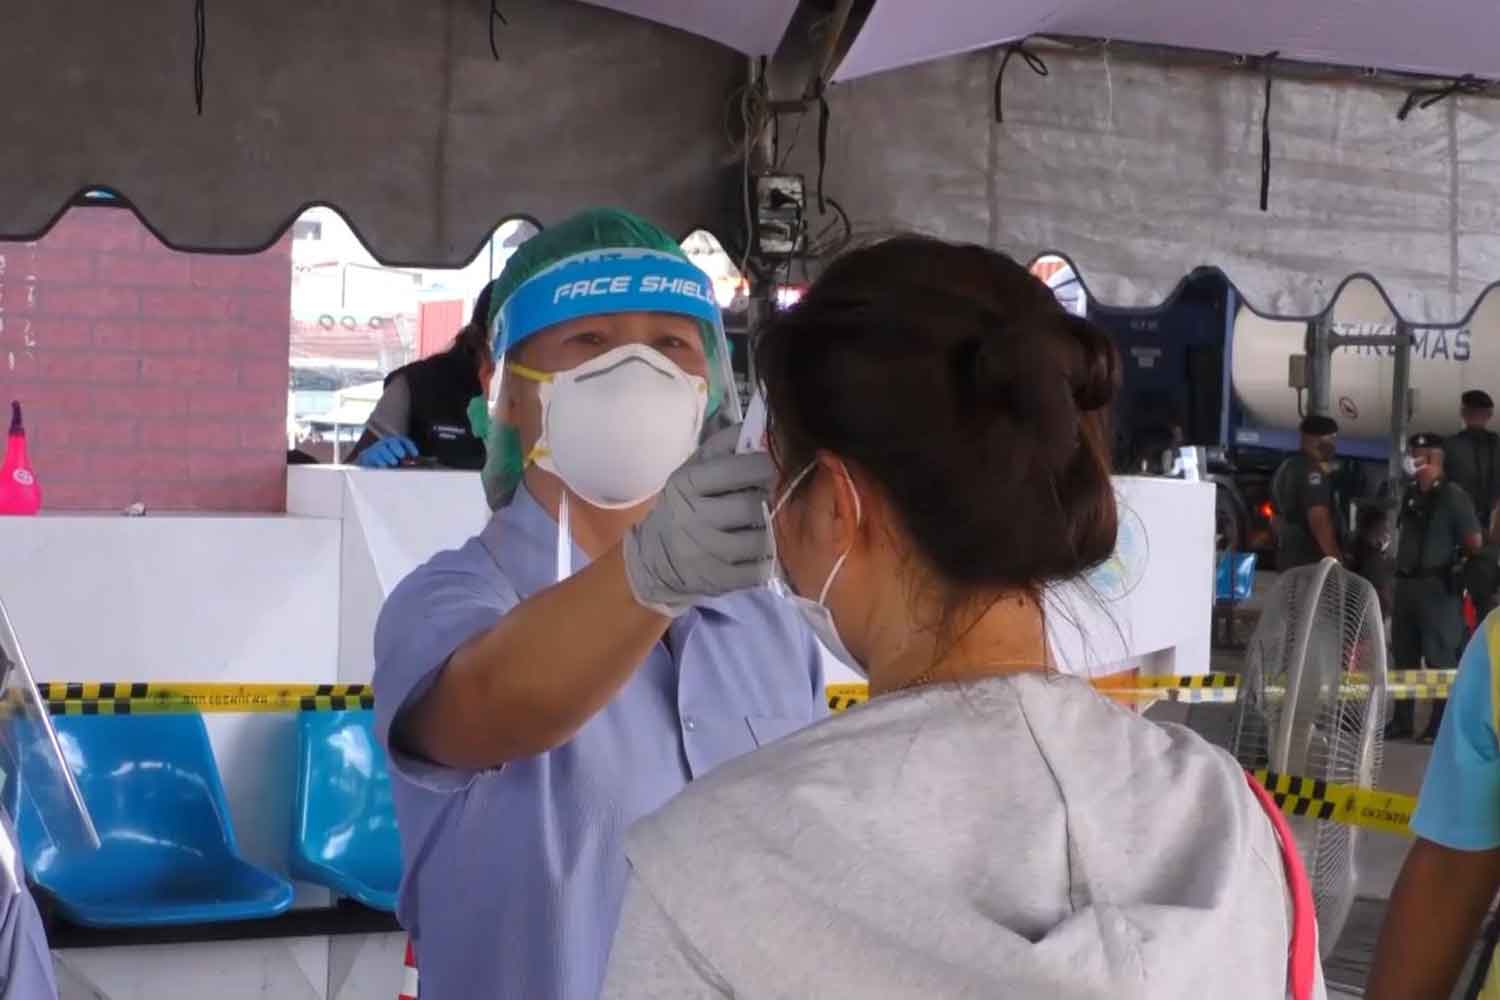 A Thai returnee from Malaysia has her temperature taken at the Sadao immigration checkpoint in Songkhla province. (Photo: Assawin Pakkawan)